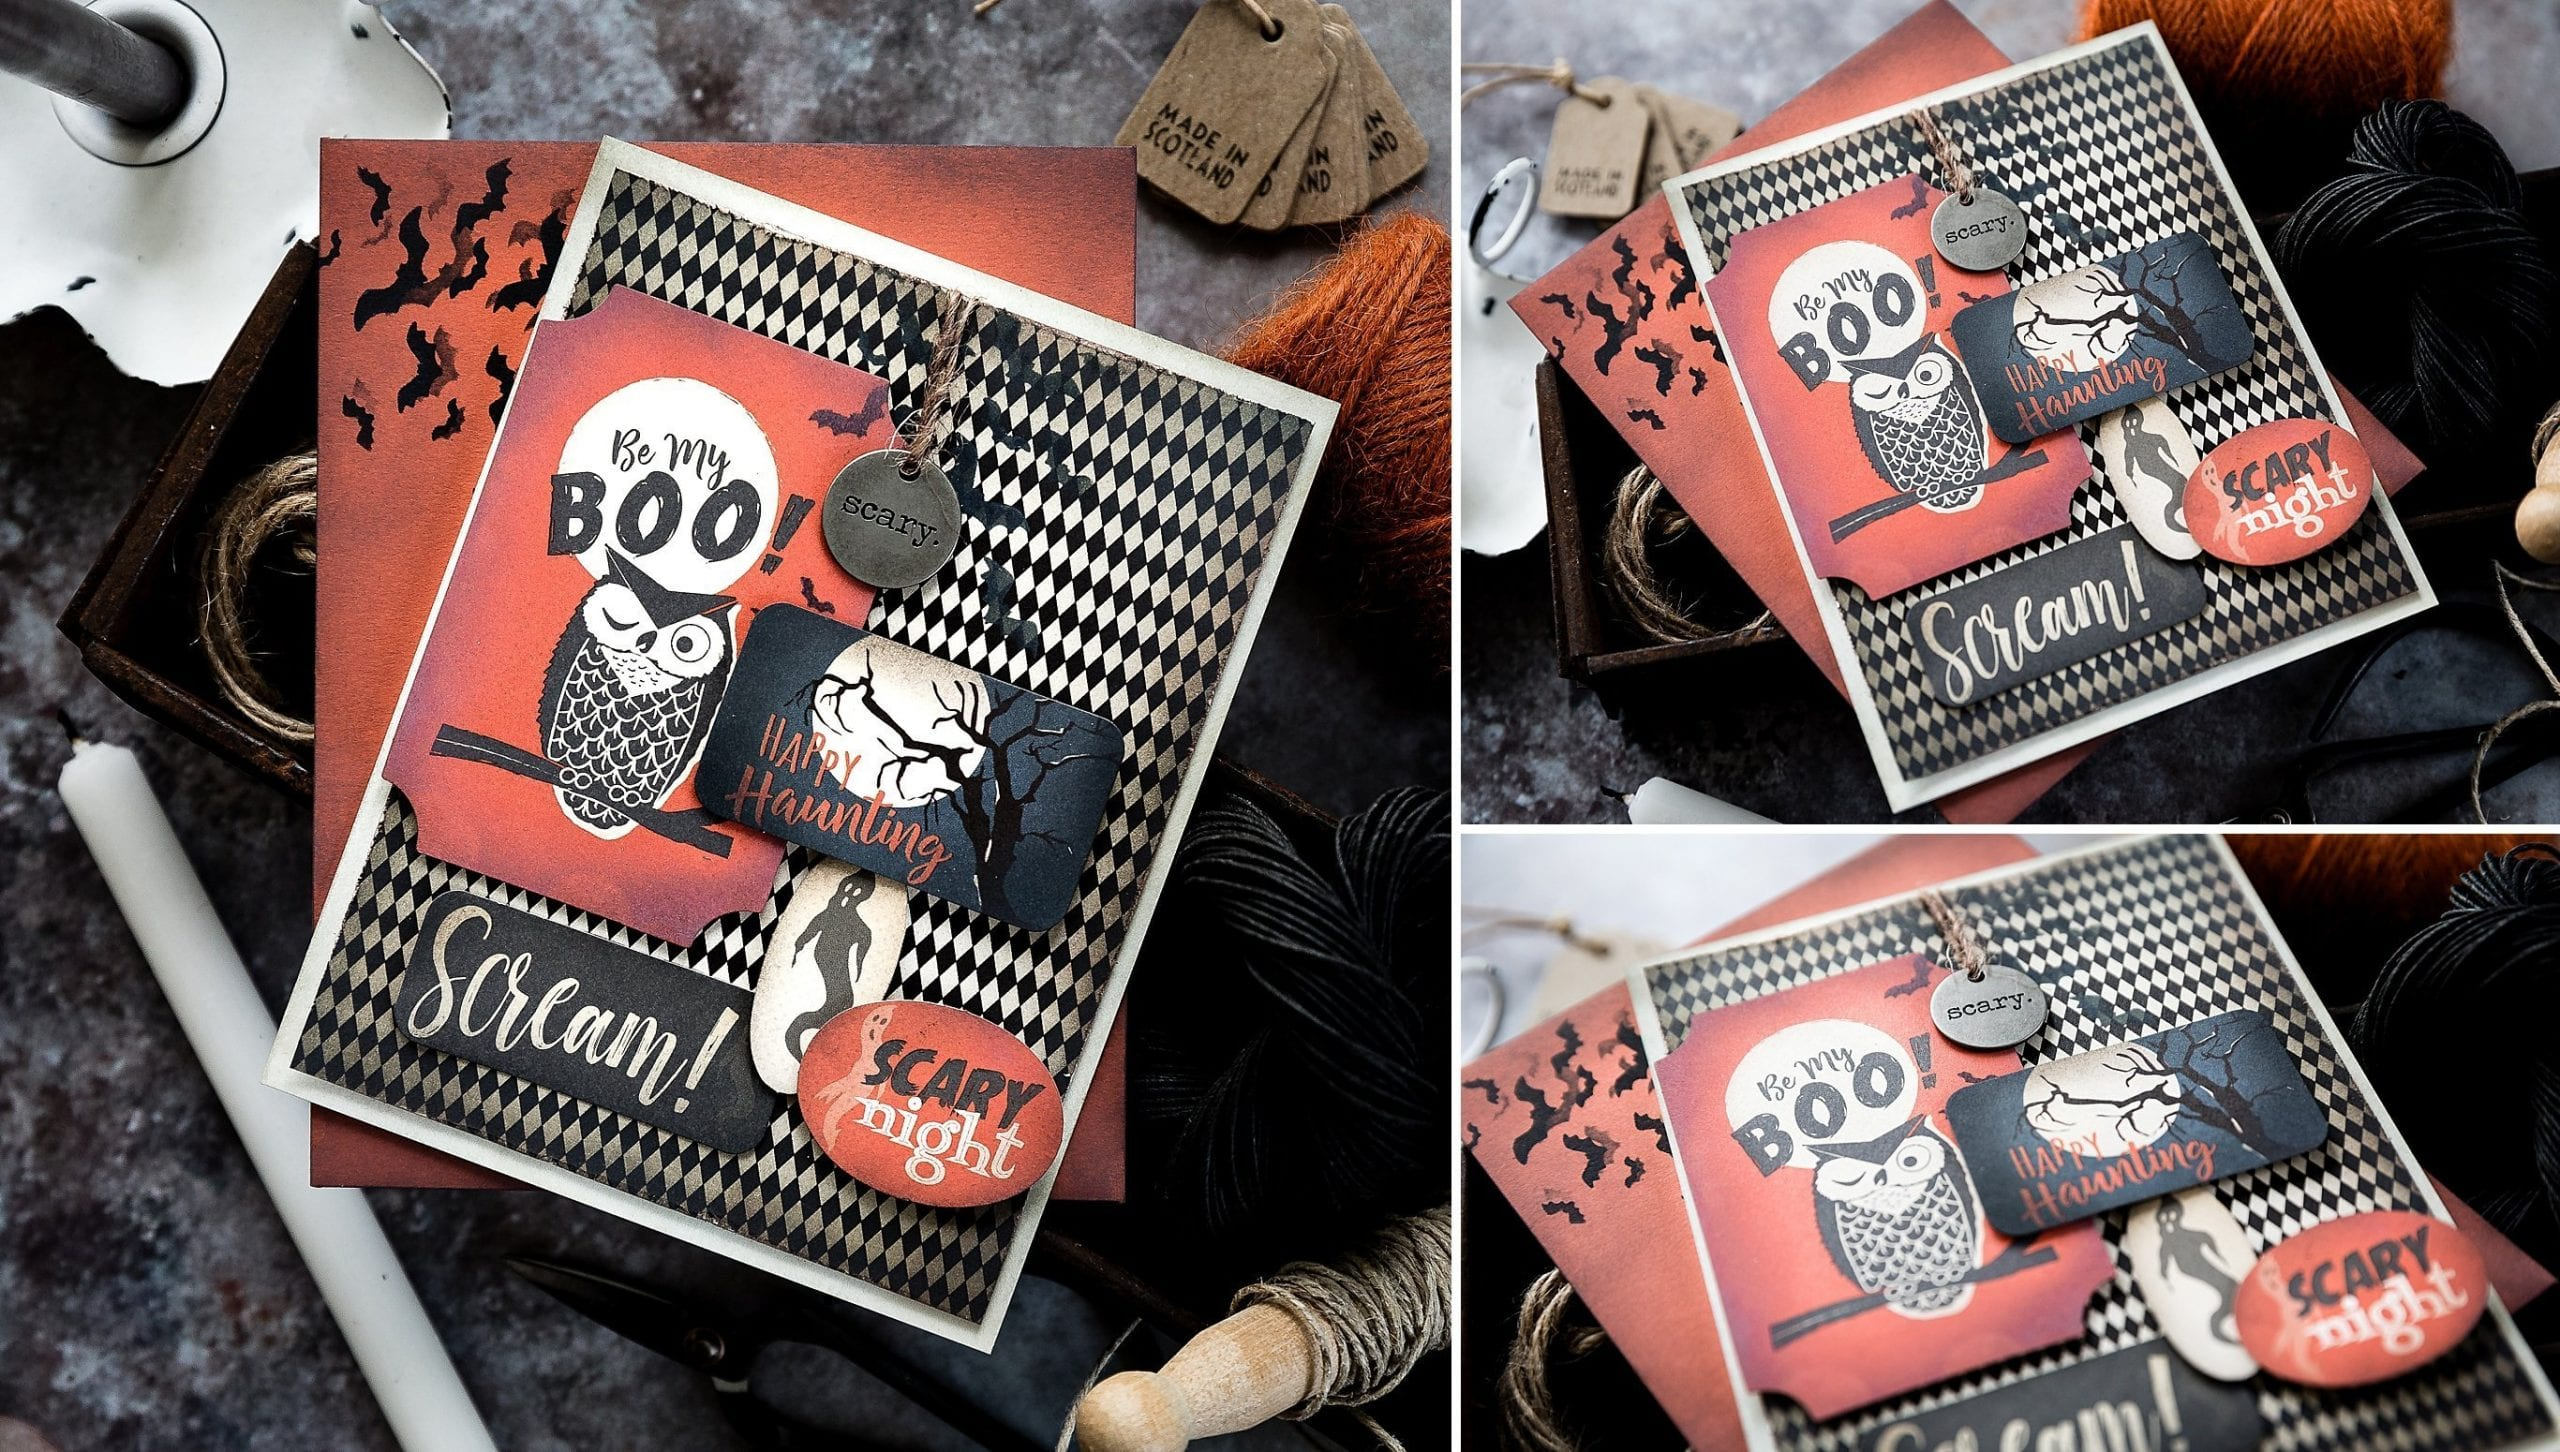 Halloween handmade card by Debby Hughes using the Limited Edition Halloween Card Kit from Simon Says Stamp. Find out more here: https://limedoodledesign.com/2019/09/limited-edition-stamptember-halloween-card-kit/